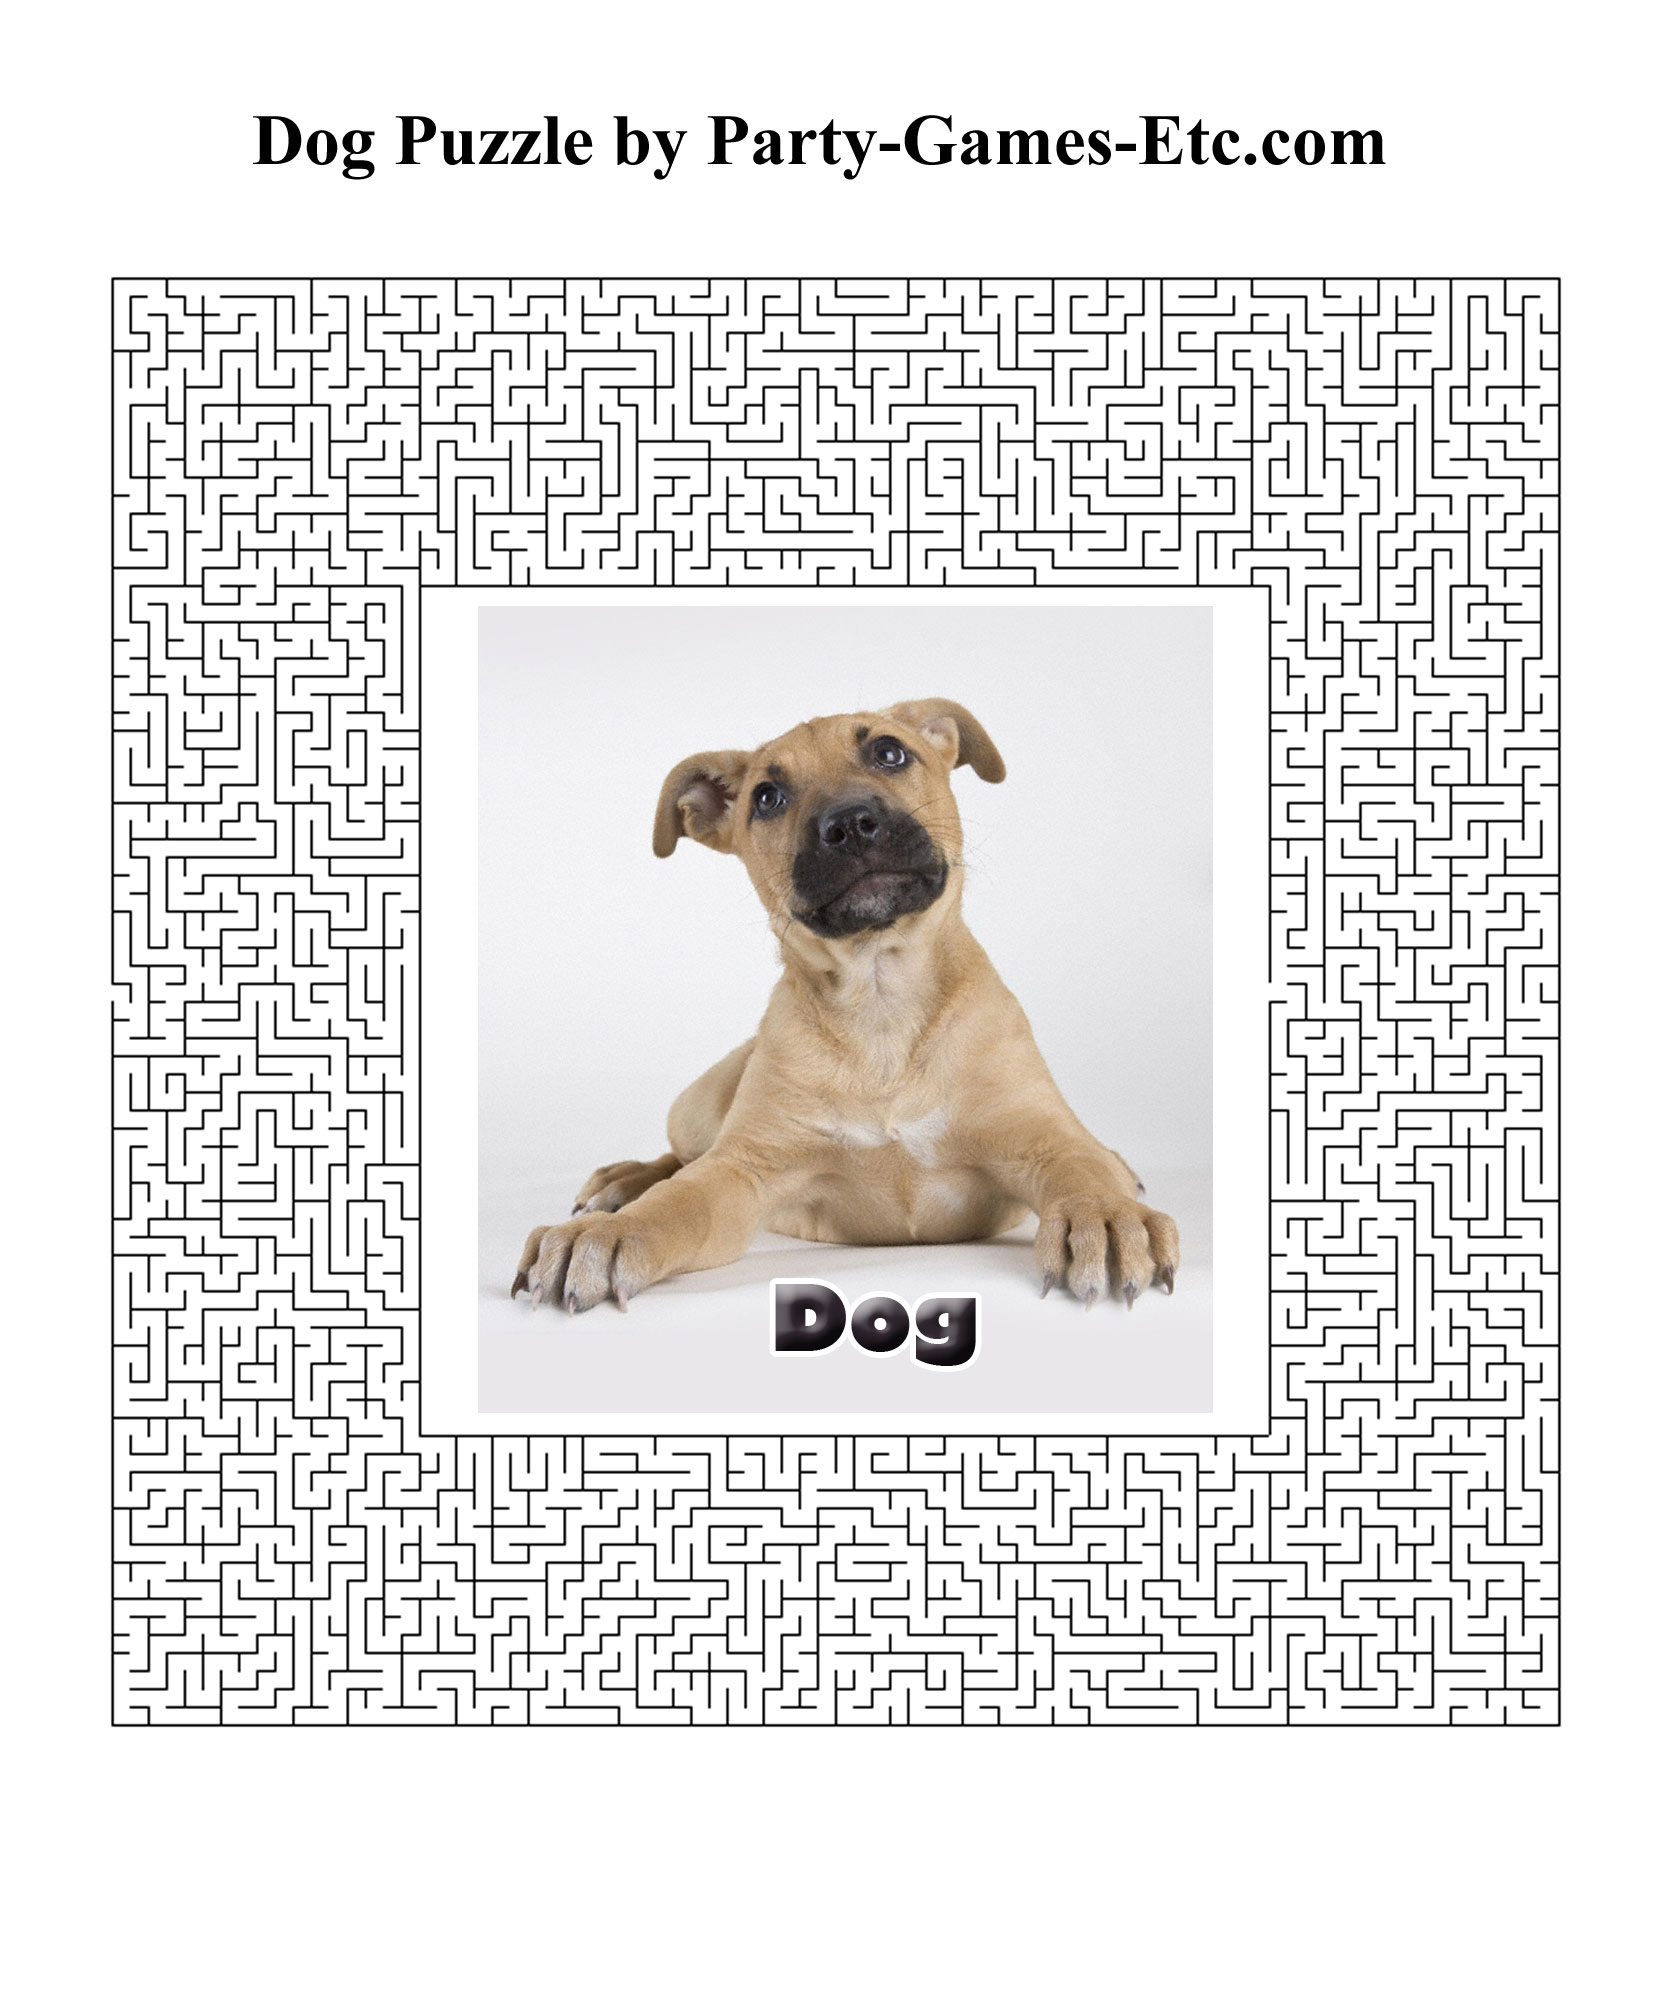 Dog Party Games, Free Printable Games And Activities For A Theme - Free Printable Dog Puzzle